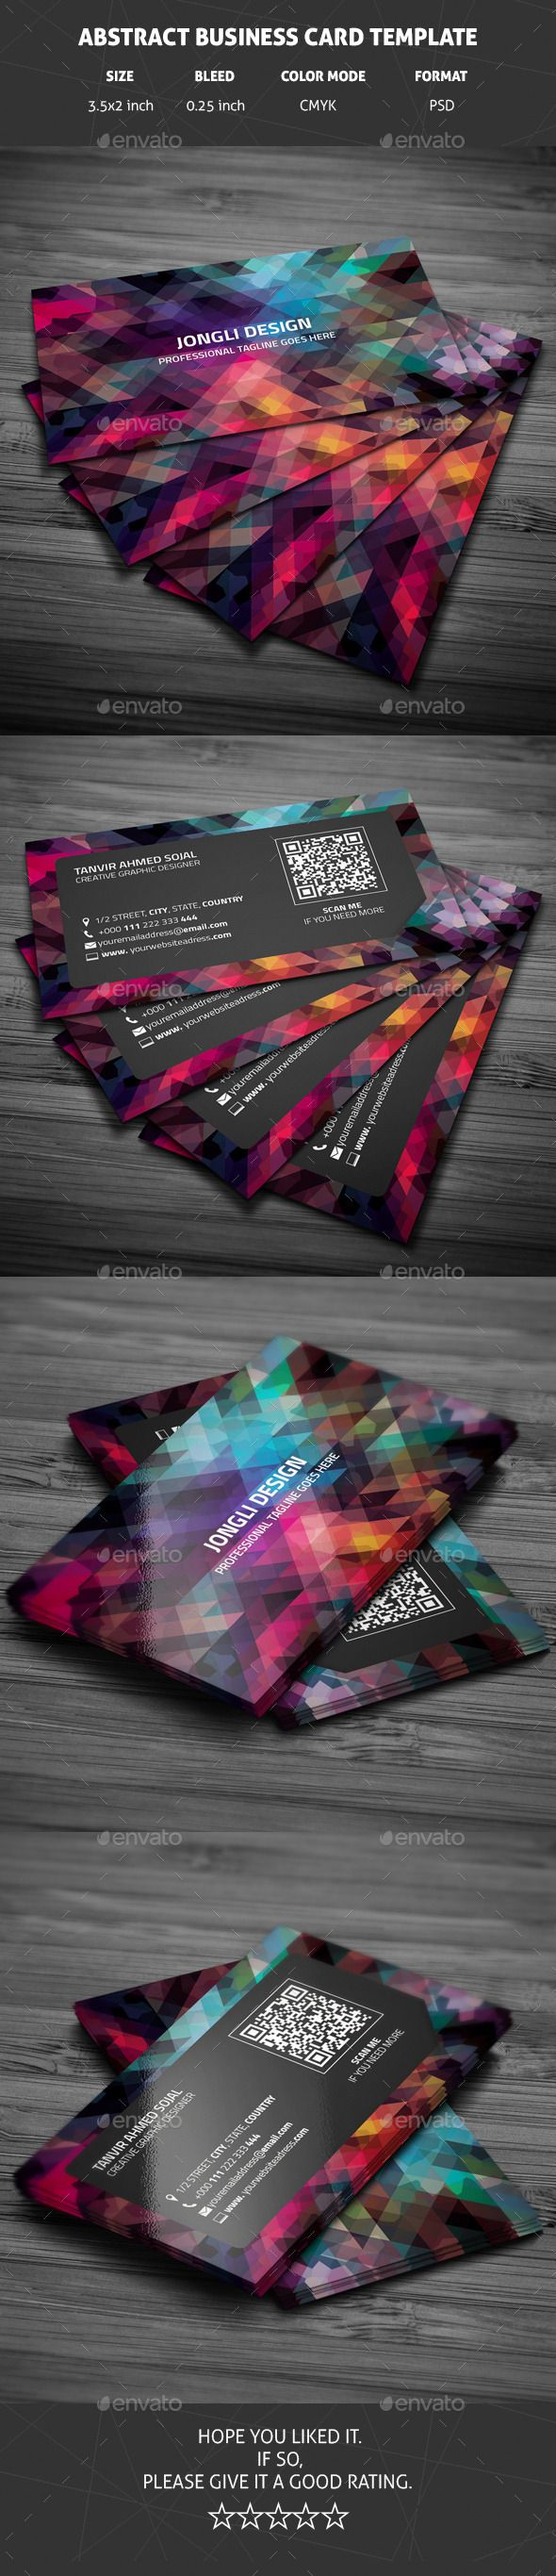 Color Business Card | Card templates, Business cards and Template